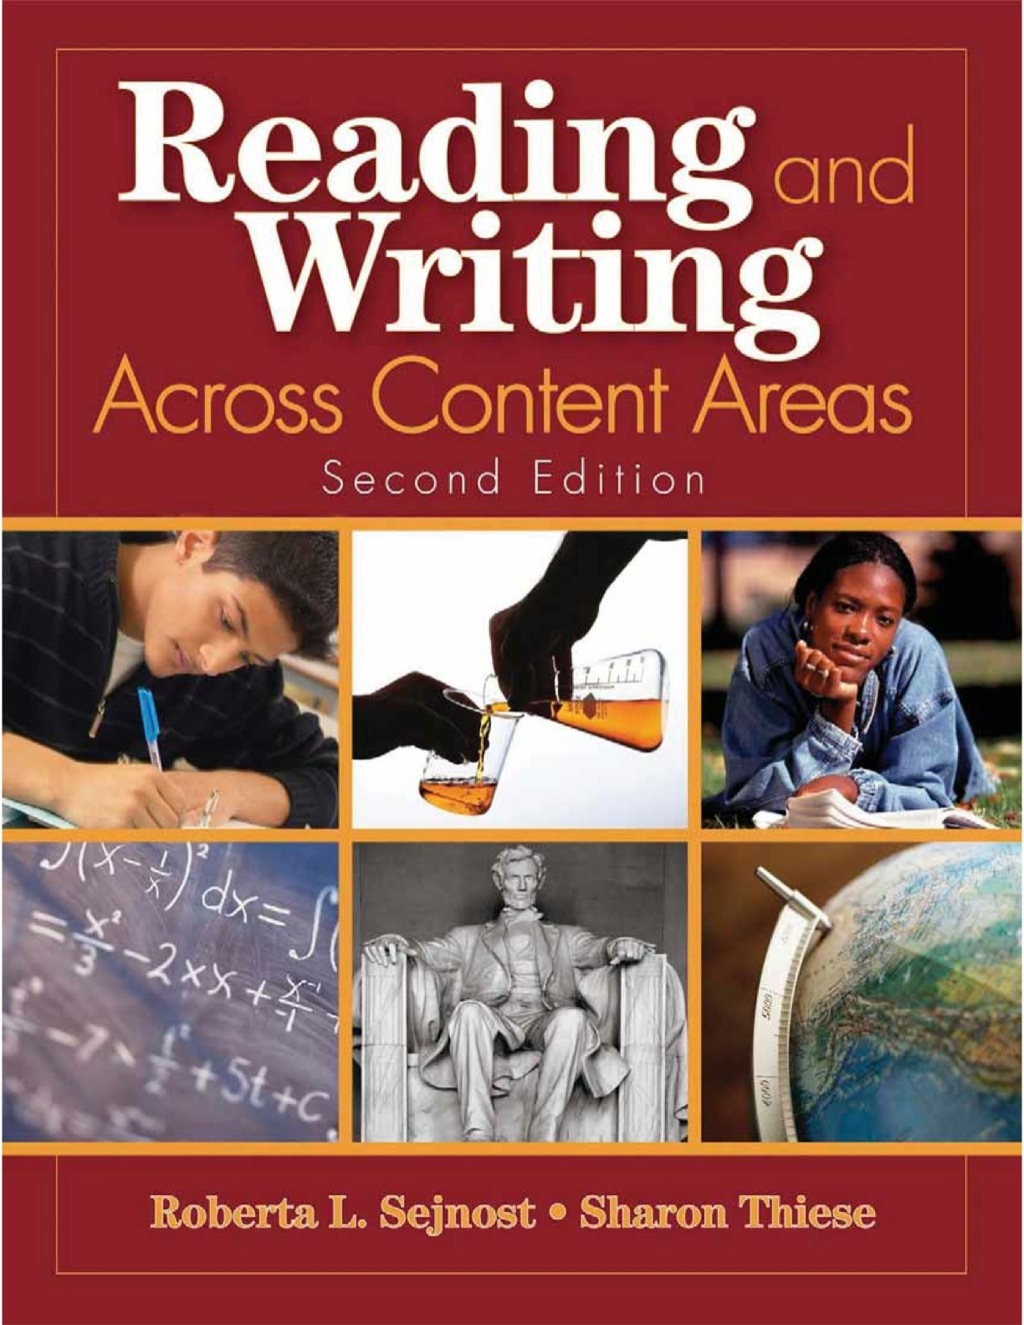 Reading and Writing Across Content Areas (ebook) eBooks